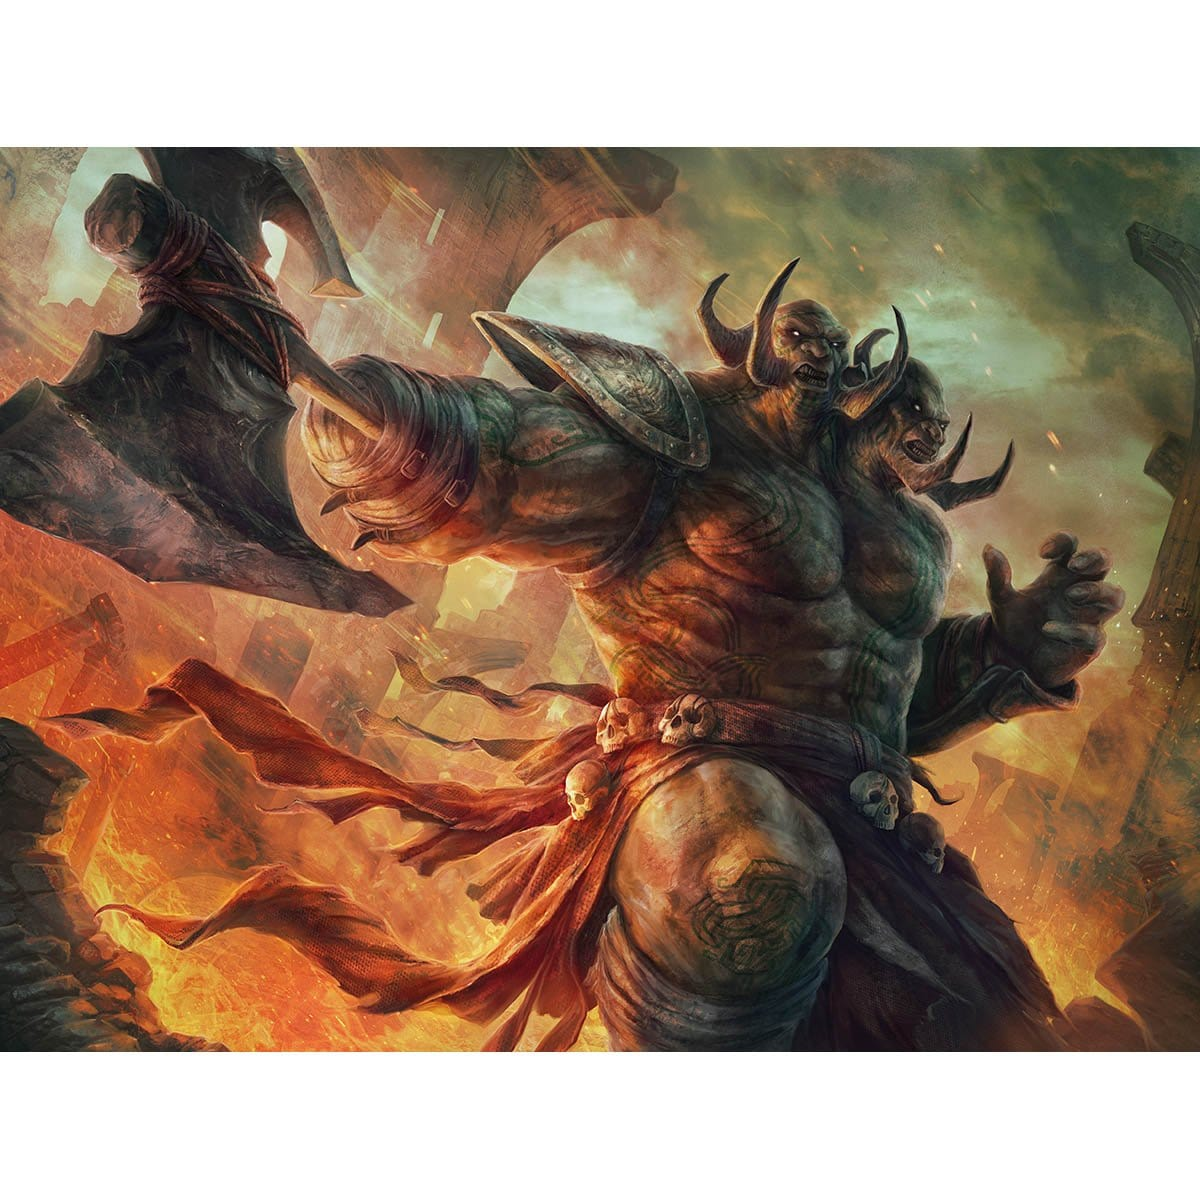 Ruric Thar, the Unbowed Print - Print - Original Magic Art - Accessories for Magic the Gathering and other card games